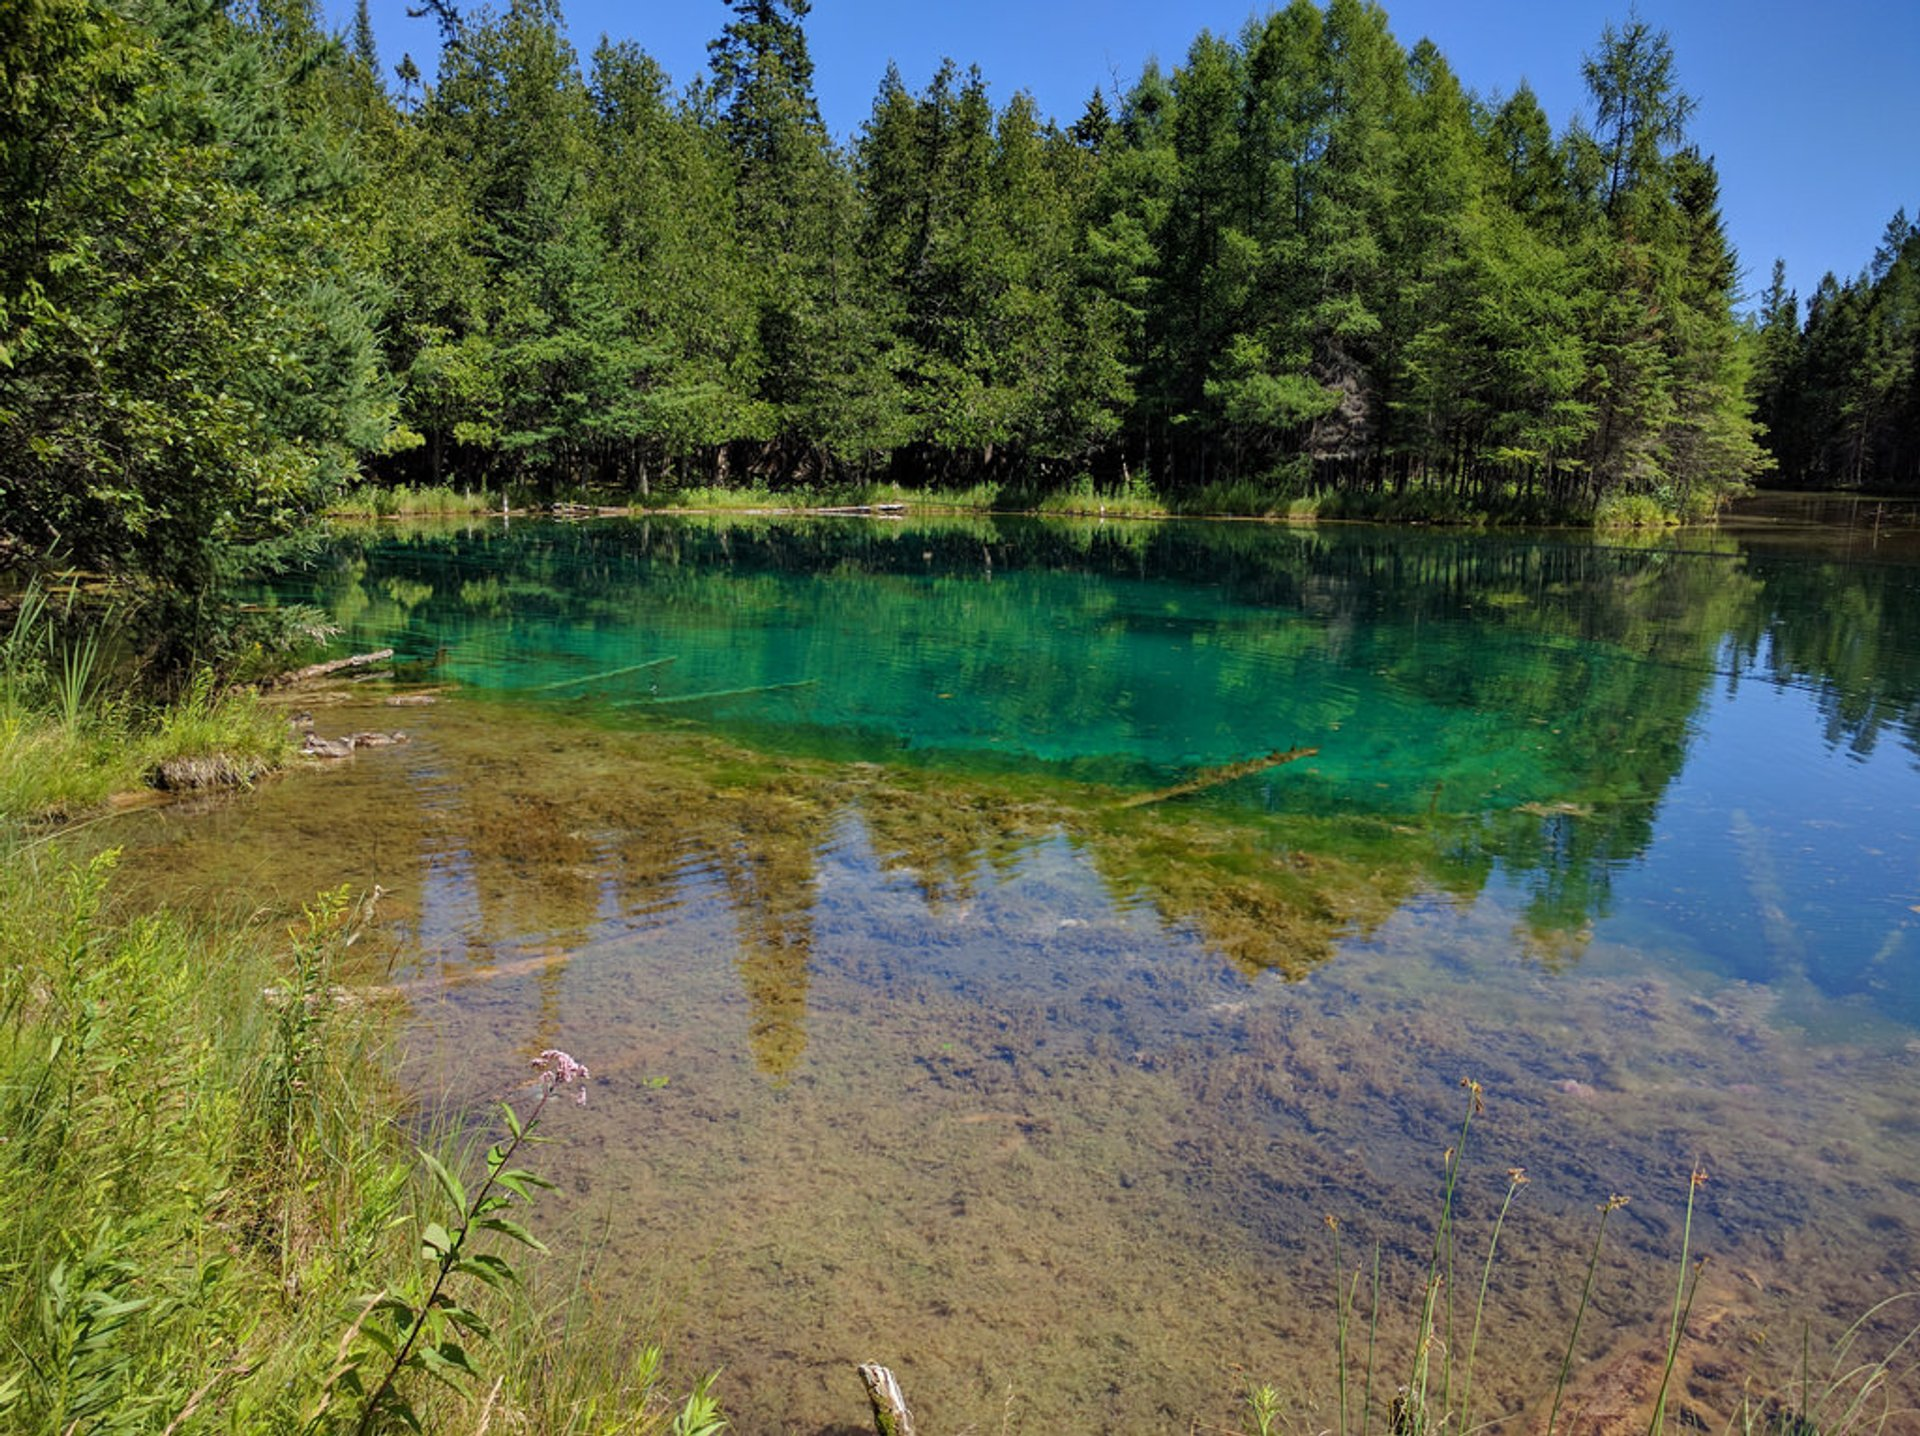 Kitch-Iti-Kipi (The Big Spring) in Midwest - Best Season 2020